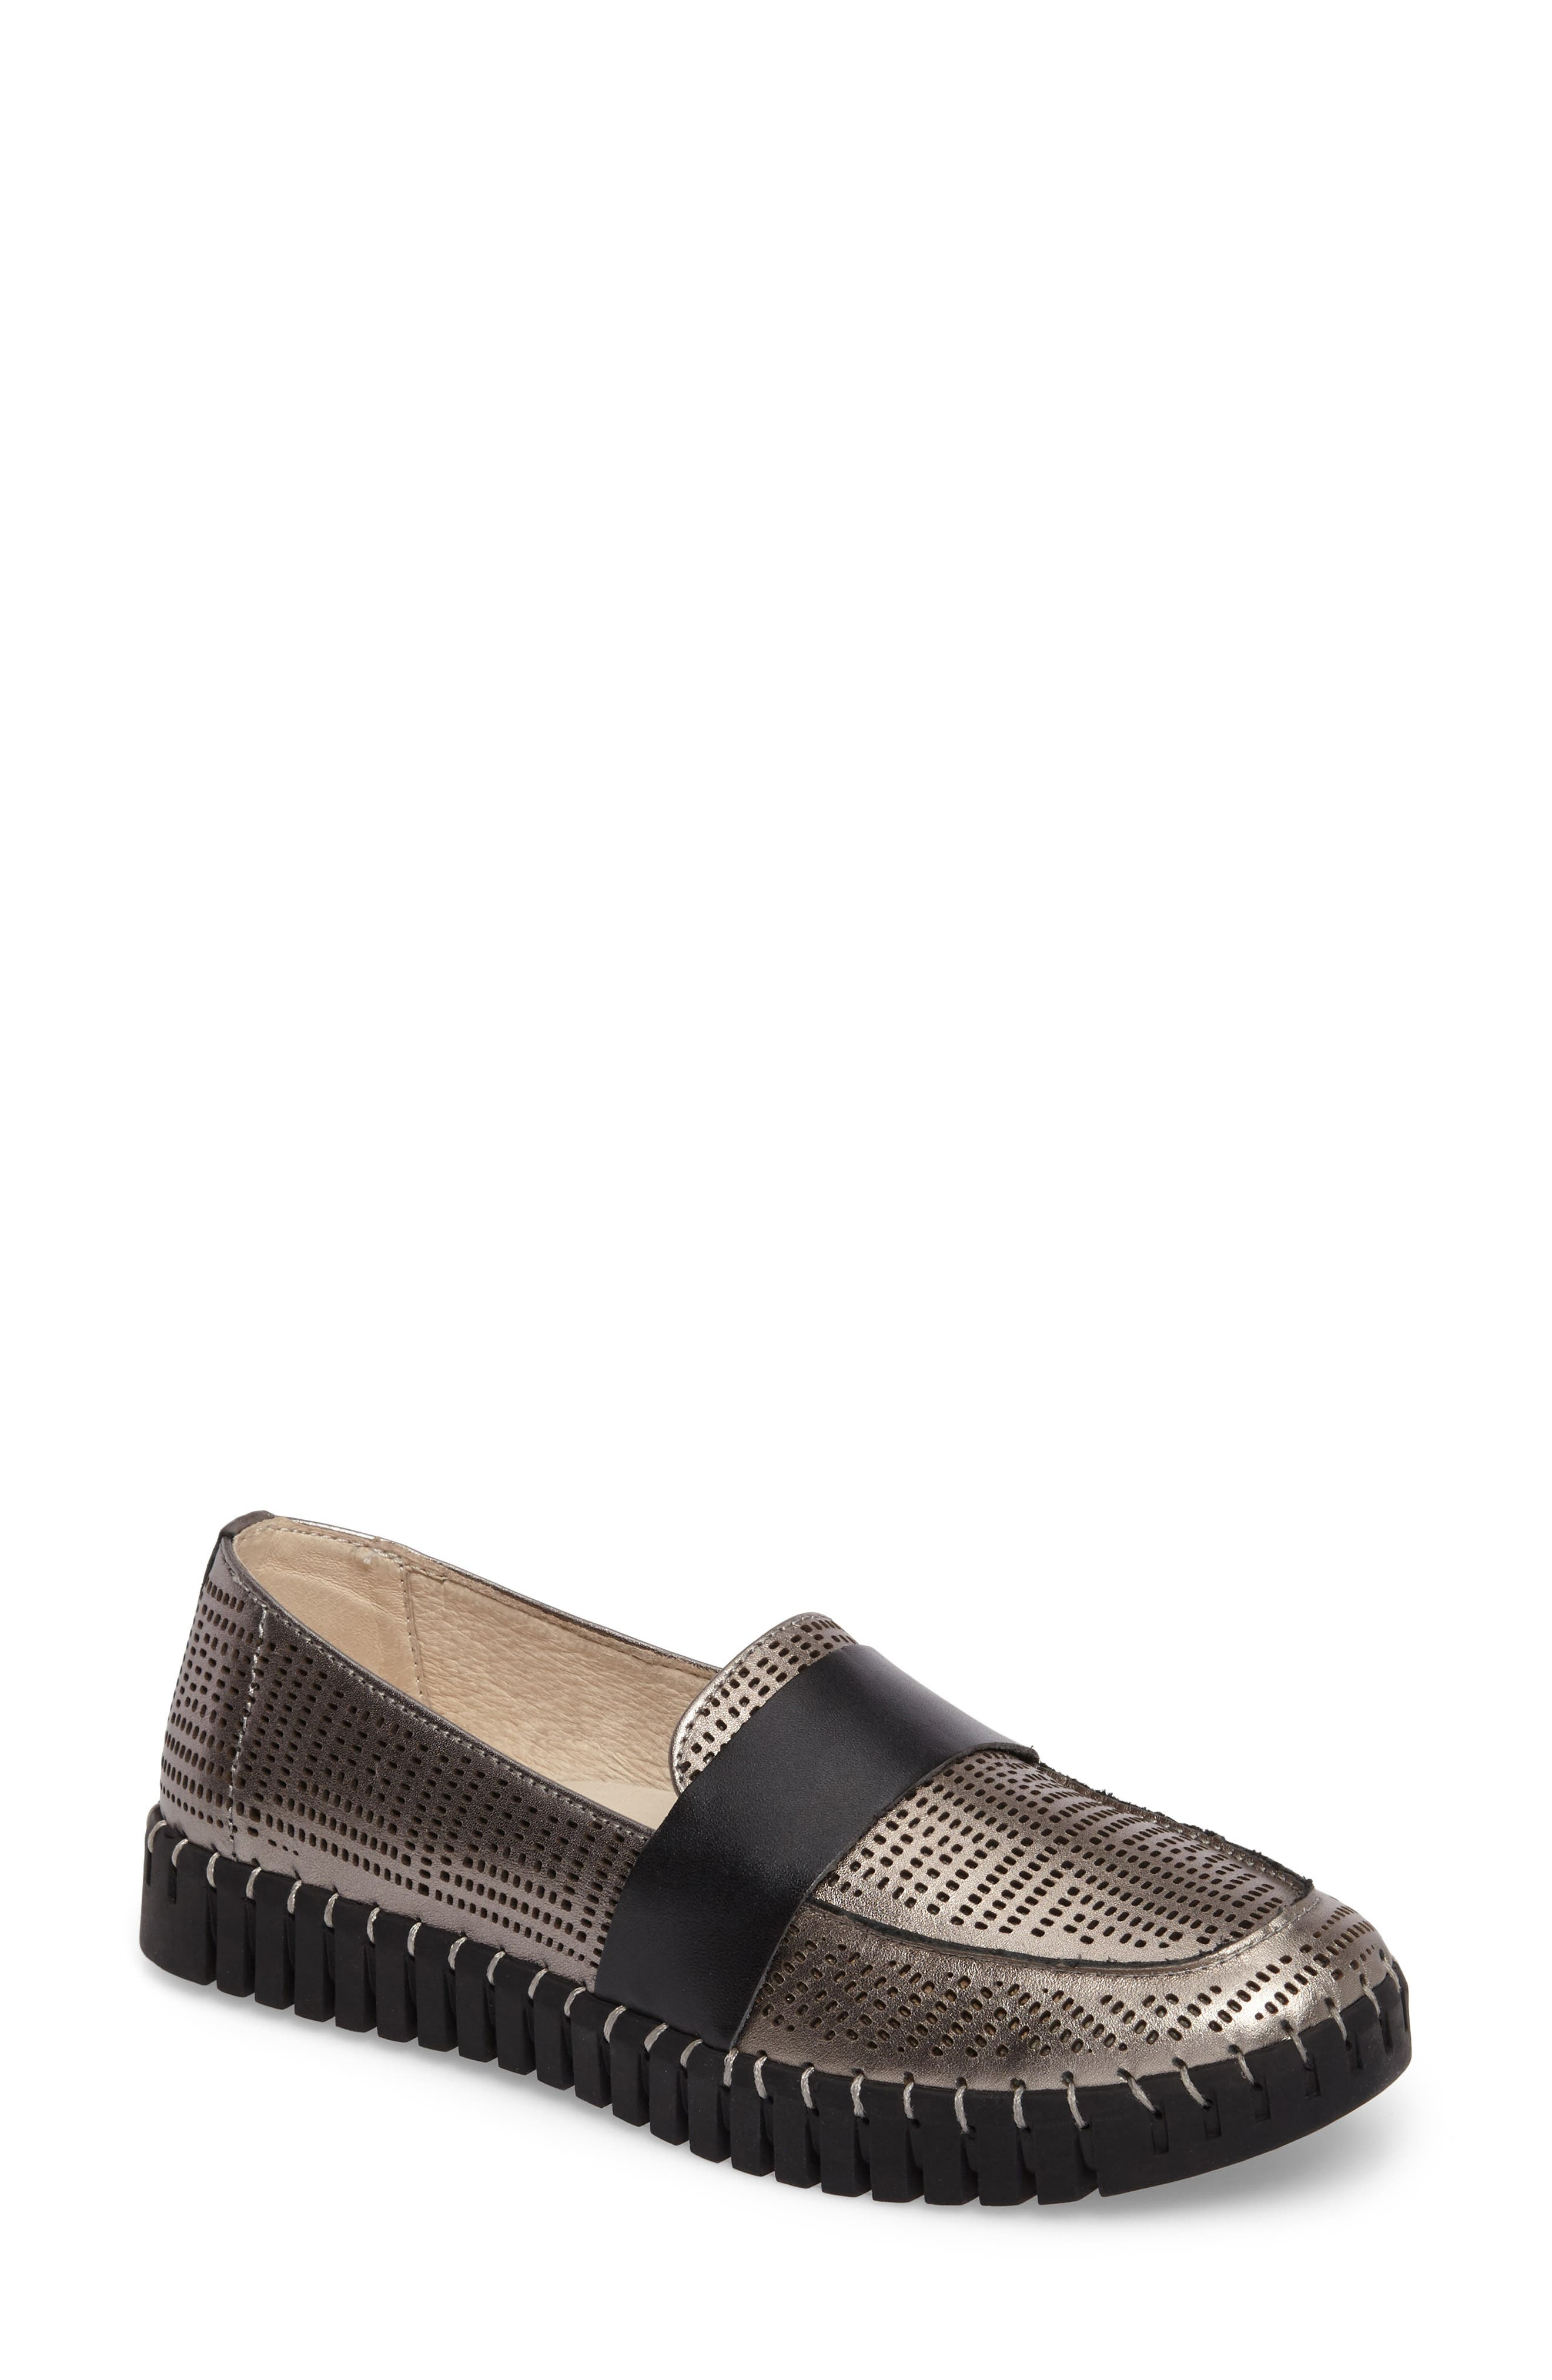 TW74 Perforated Flat,                             Main thumbnail 1, color,                             GUNMETAL LEATHER